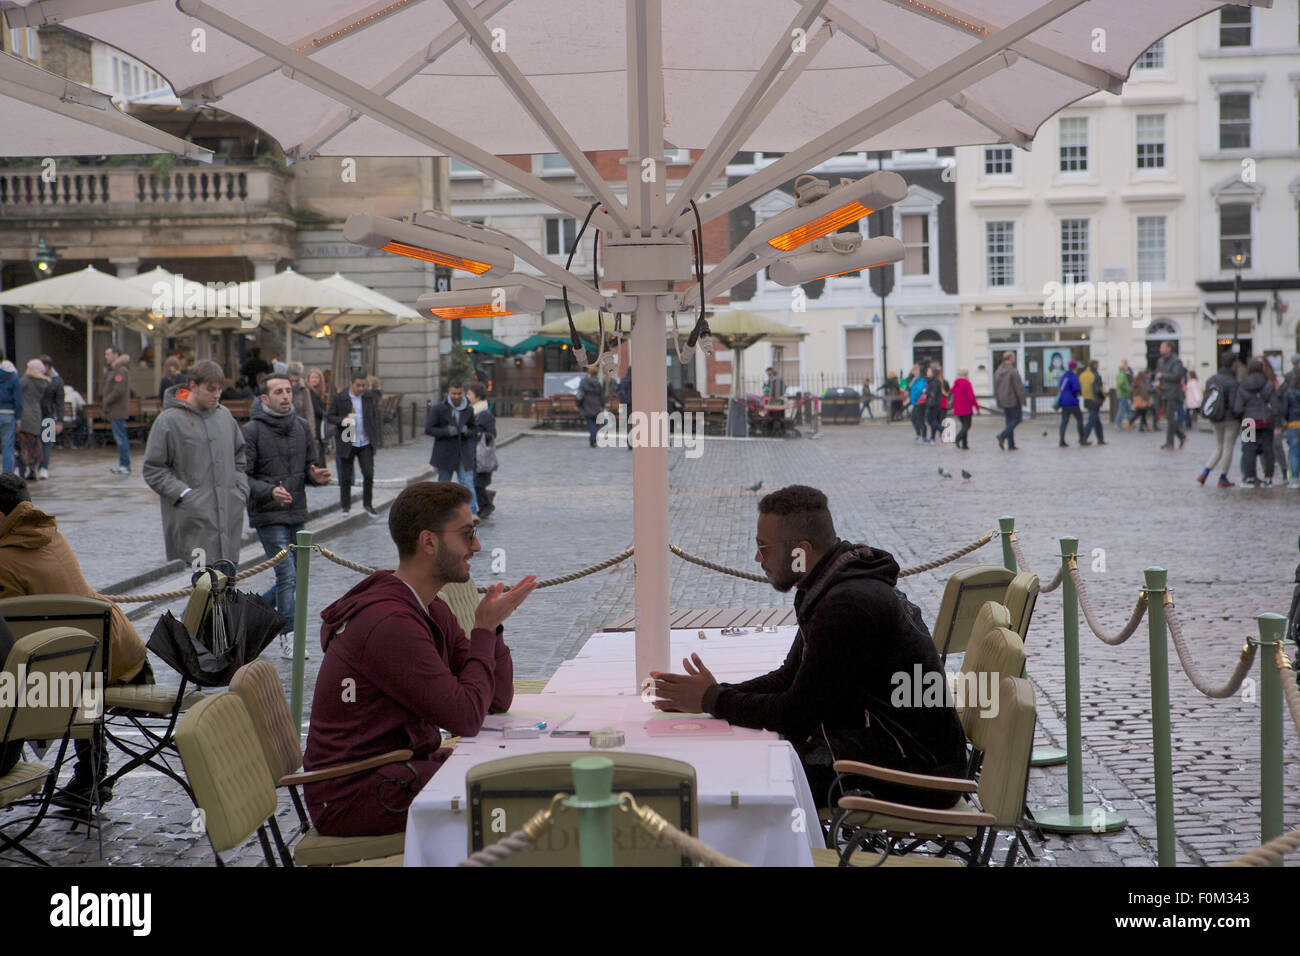 Two men at an outdoor table in Covent Garden, London - Stock Image